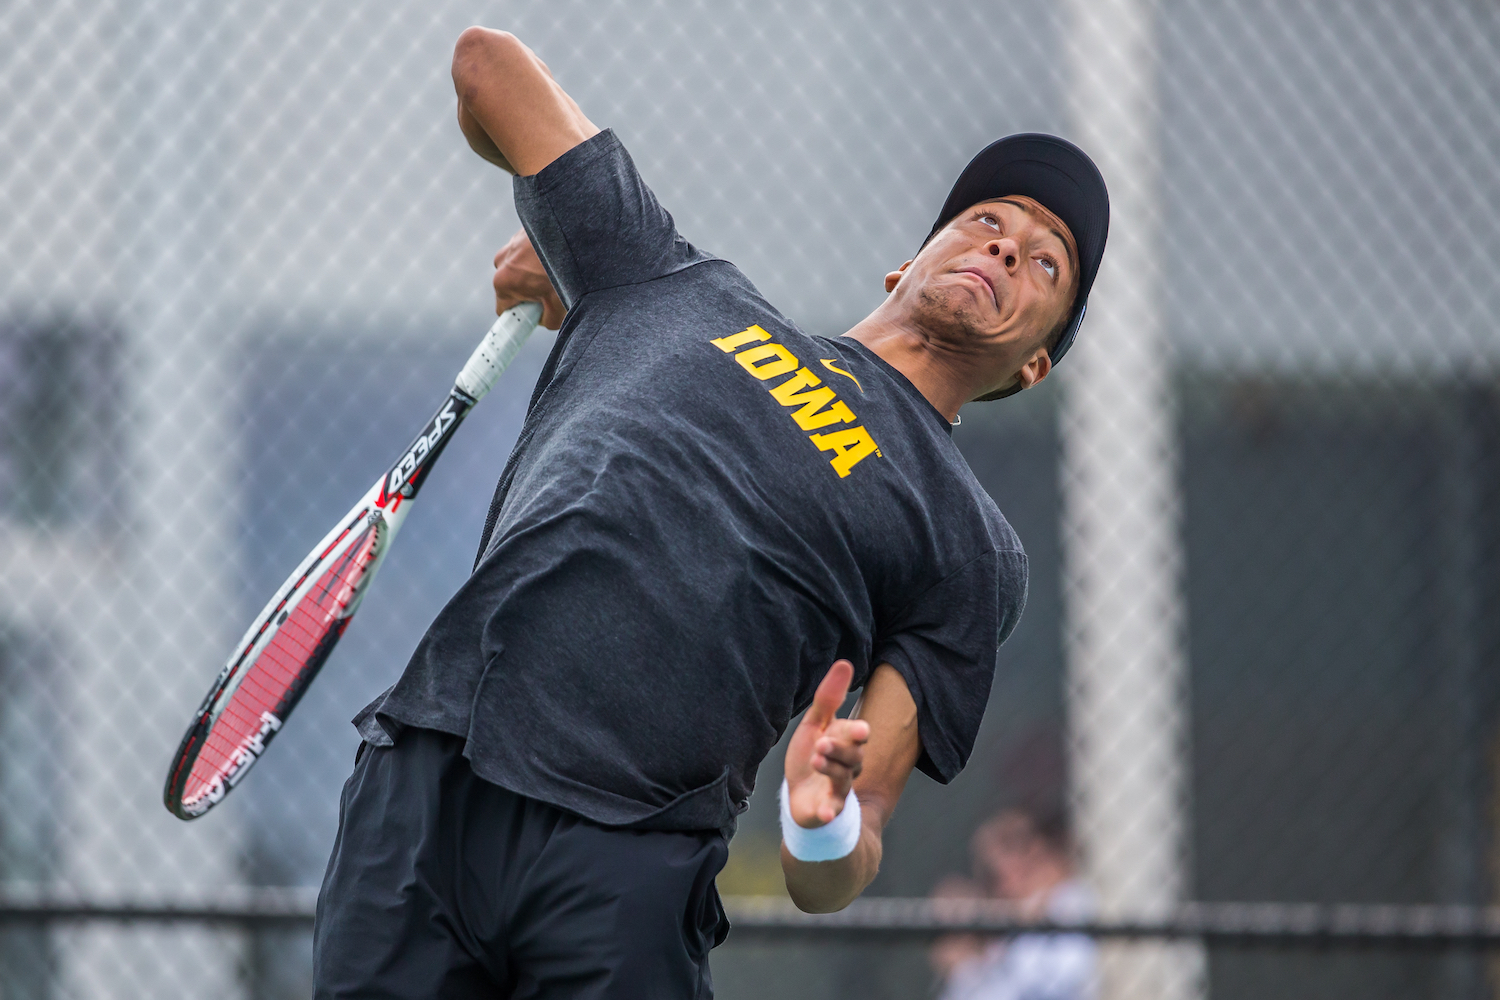 Iowa's Oliver Okonkwo hits a serve during a men's tennis match between Iowa and Ohio State at the HTRC on Sunday, April 7, 2019. The Buckeyes defeated the Hawkeyes, 4-1.